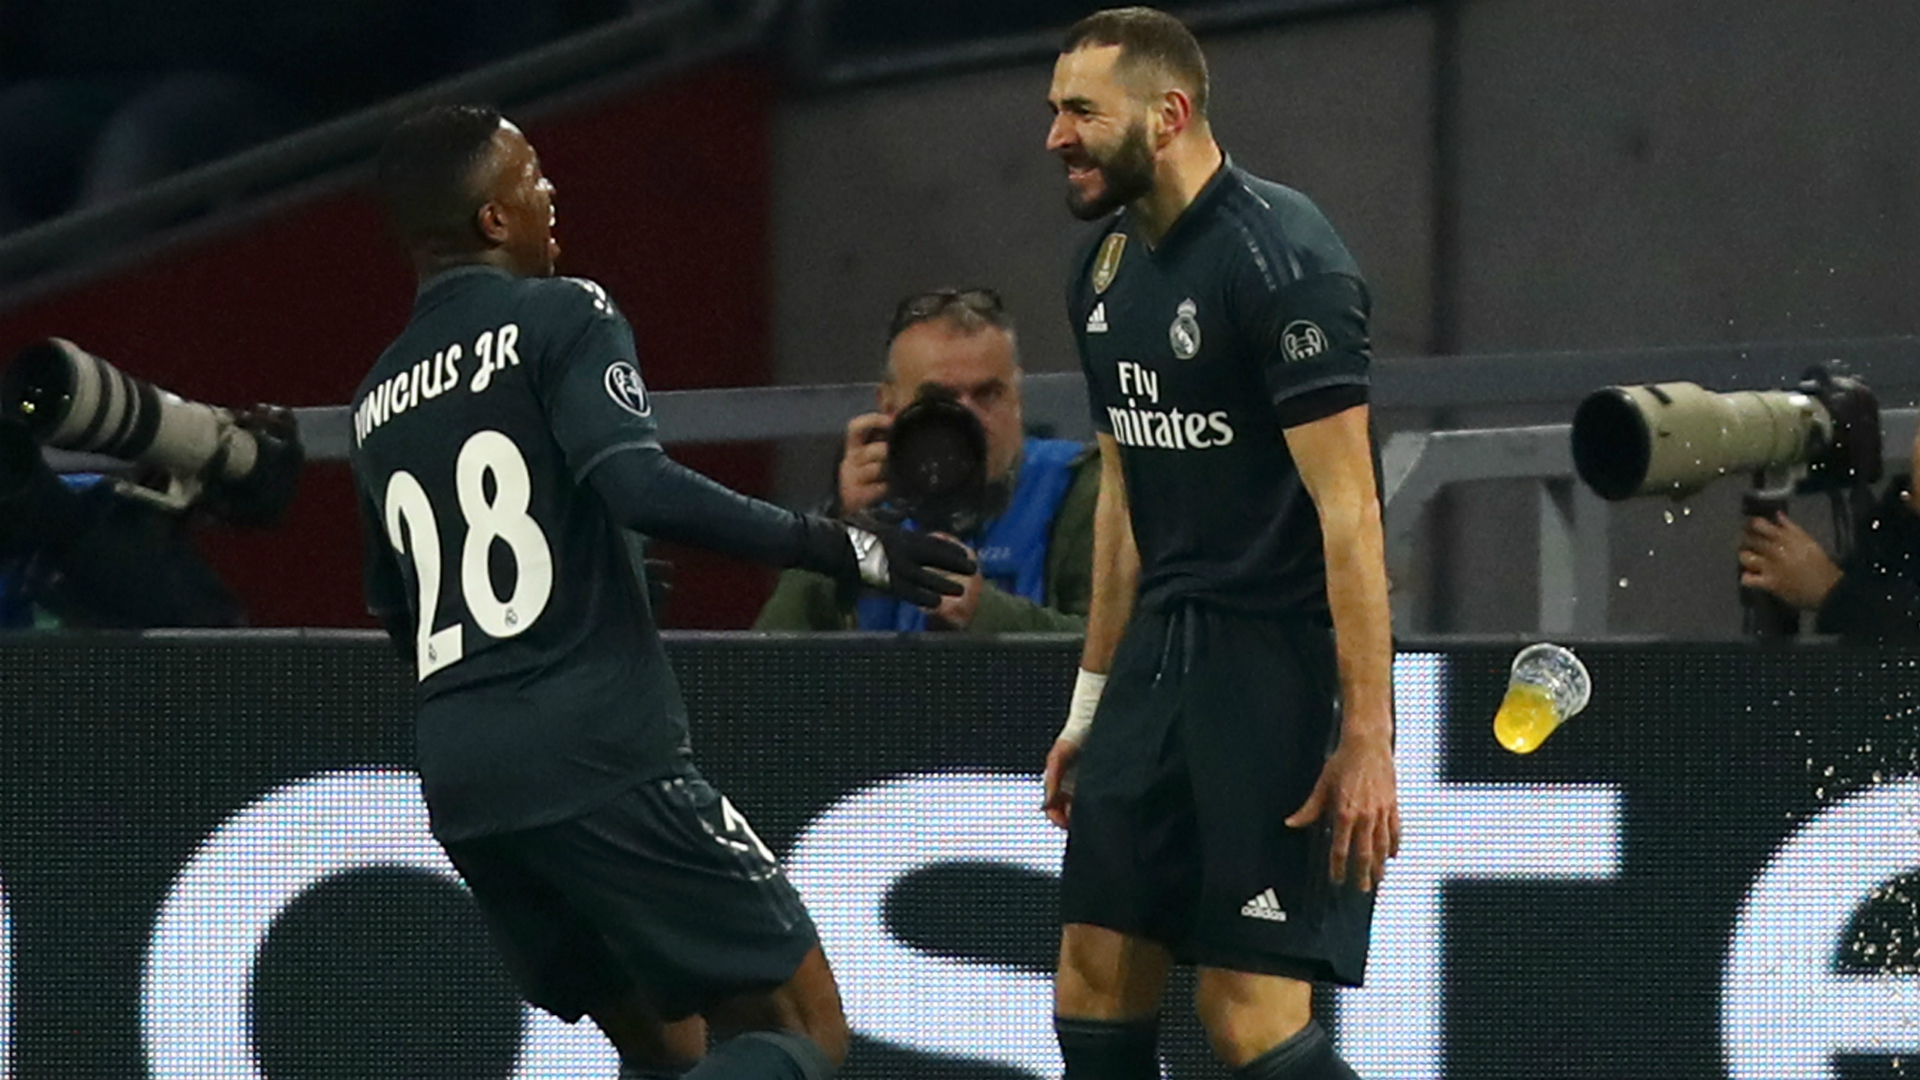 Ajax 1 Real Madrid 2: Asensio strikes late after VAR controversy